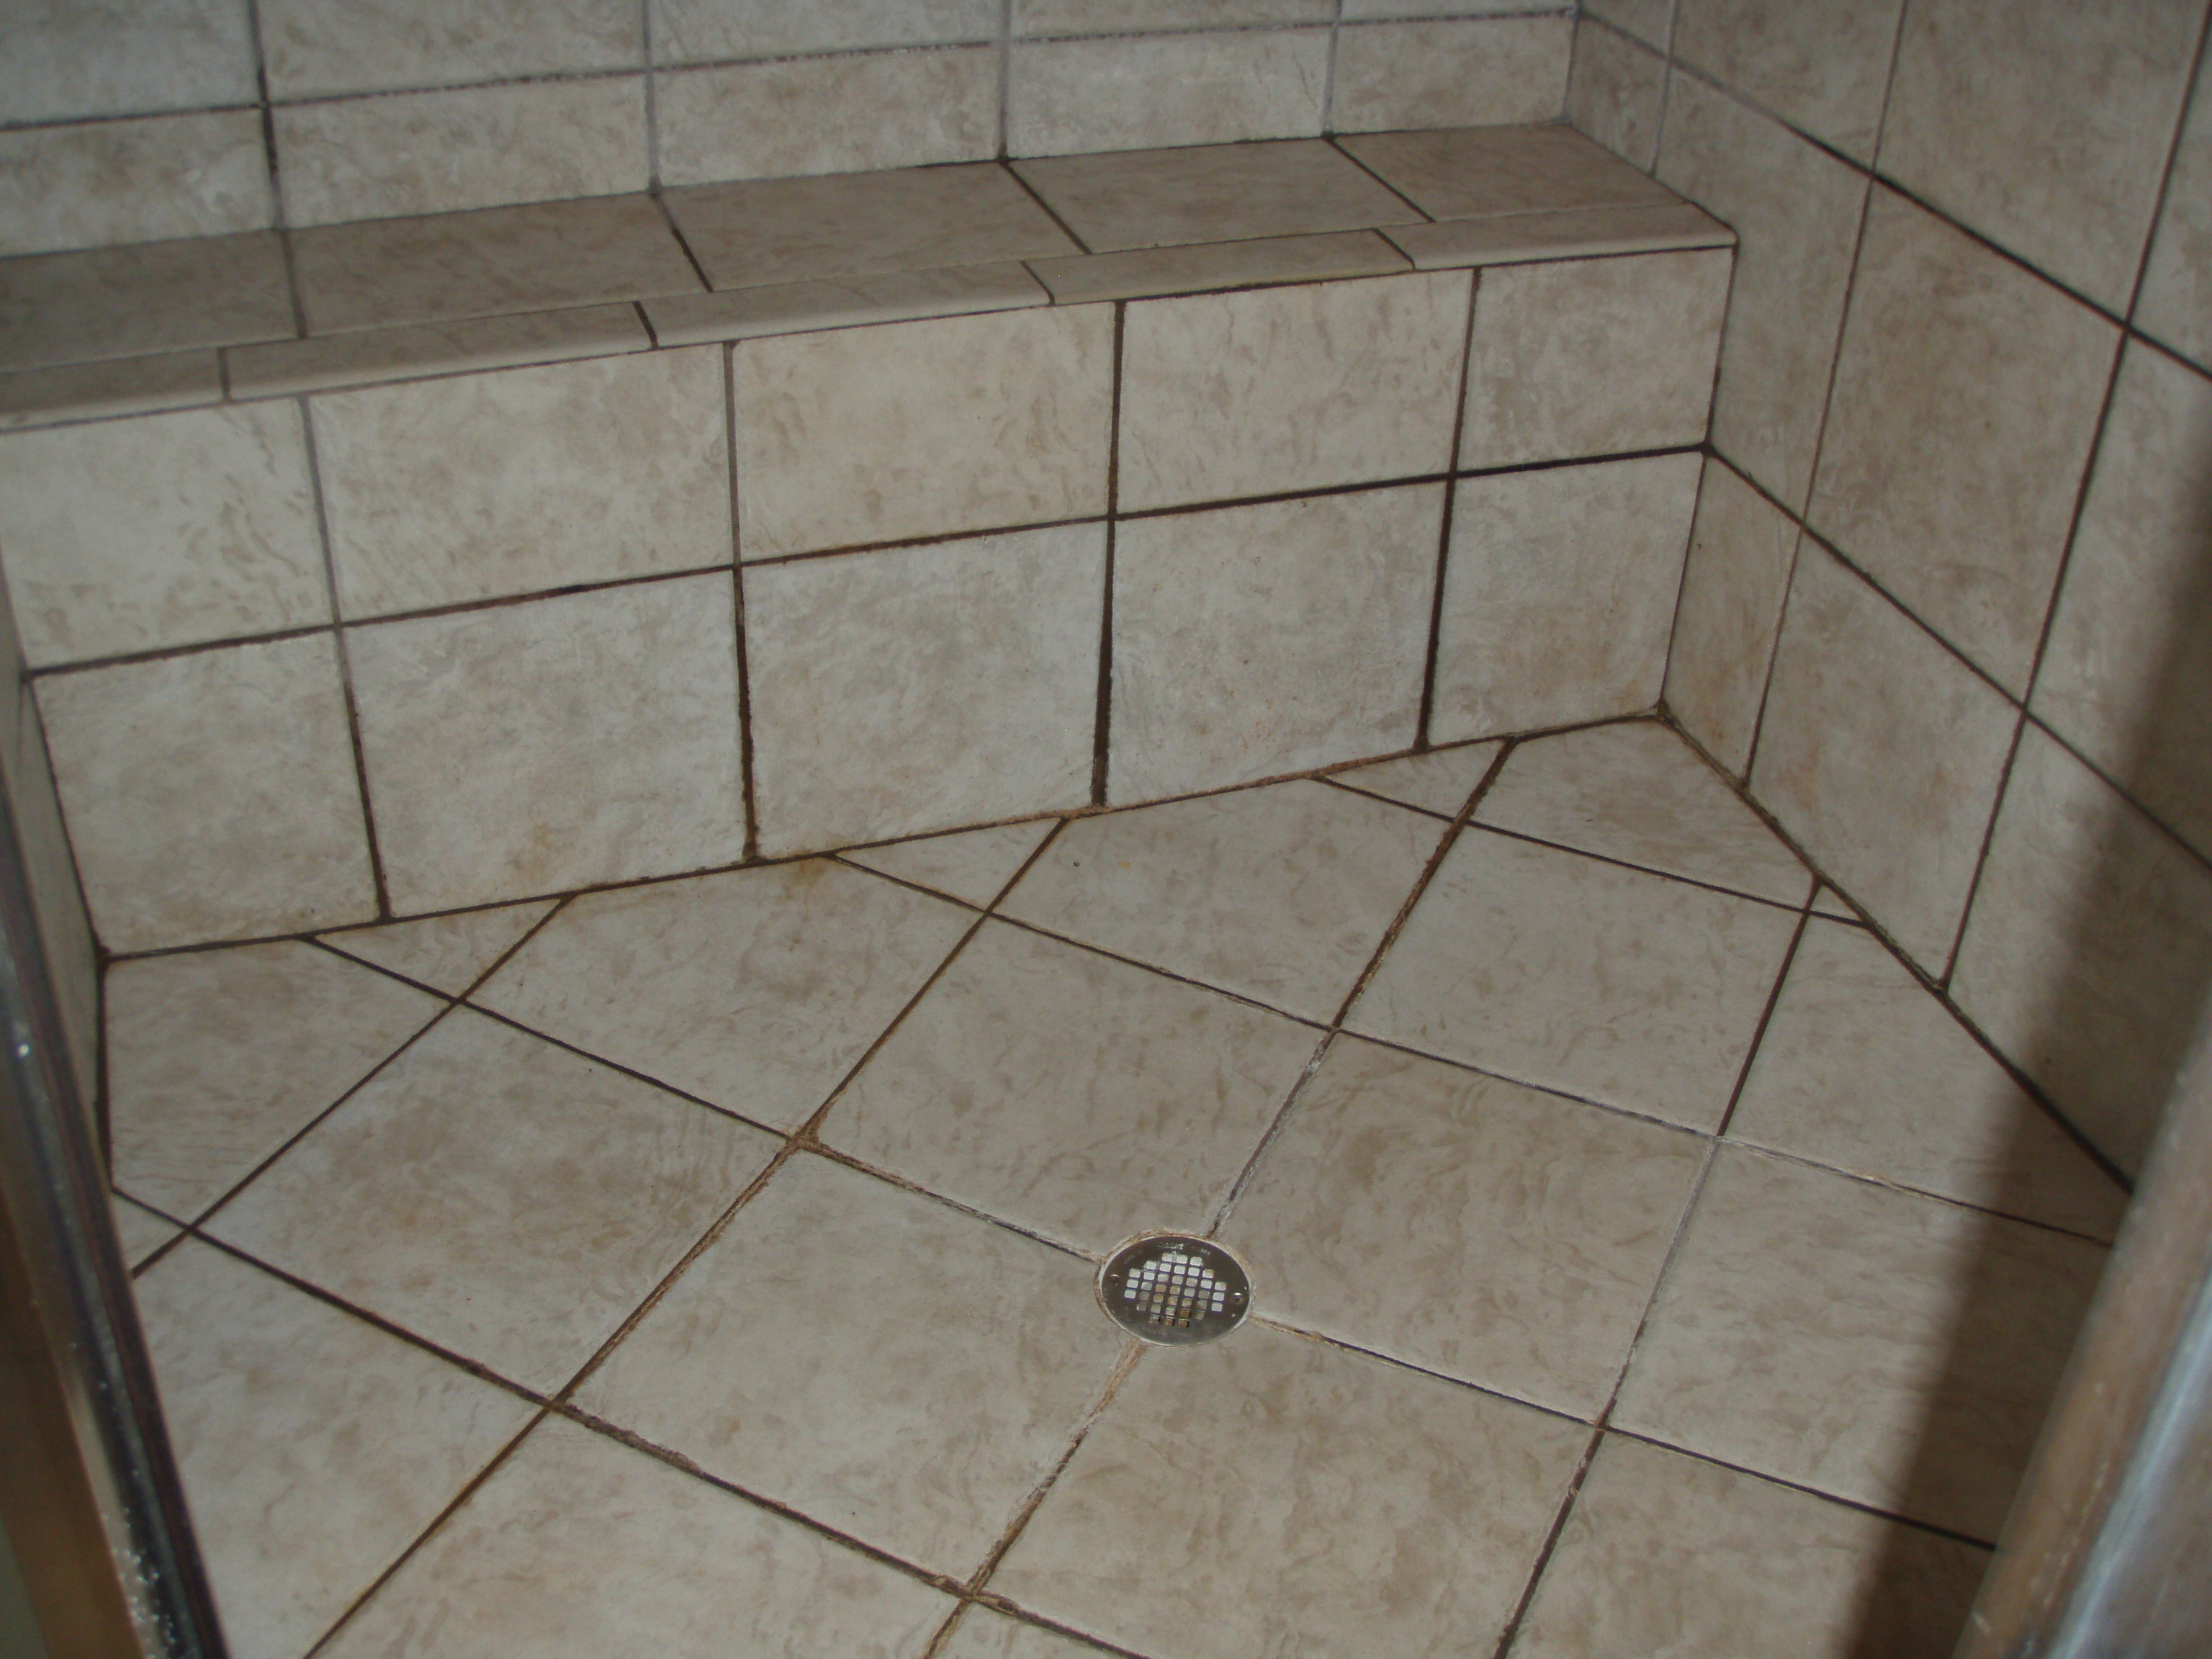 Carolina Grout Works Before And After Photos Of Tile